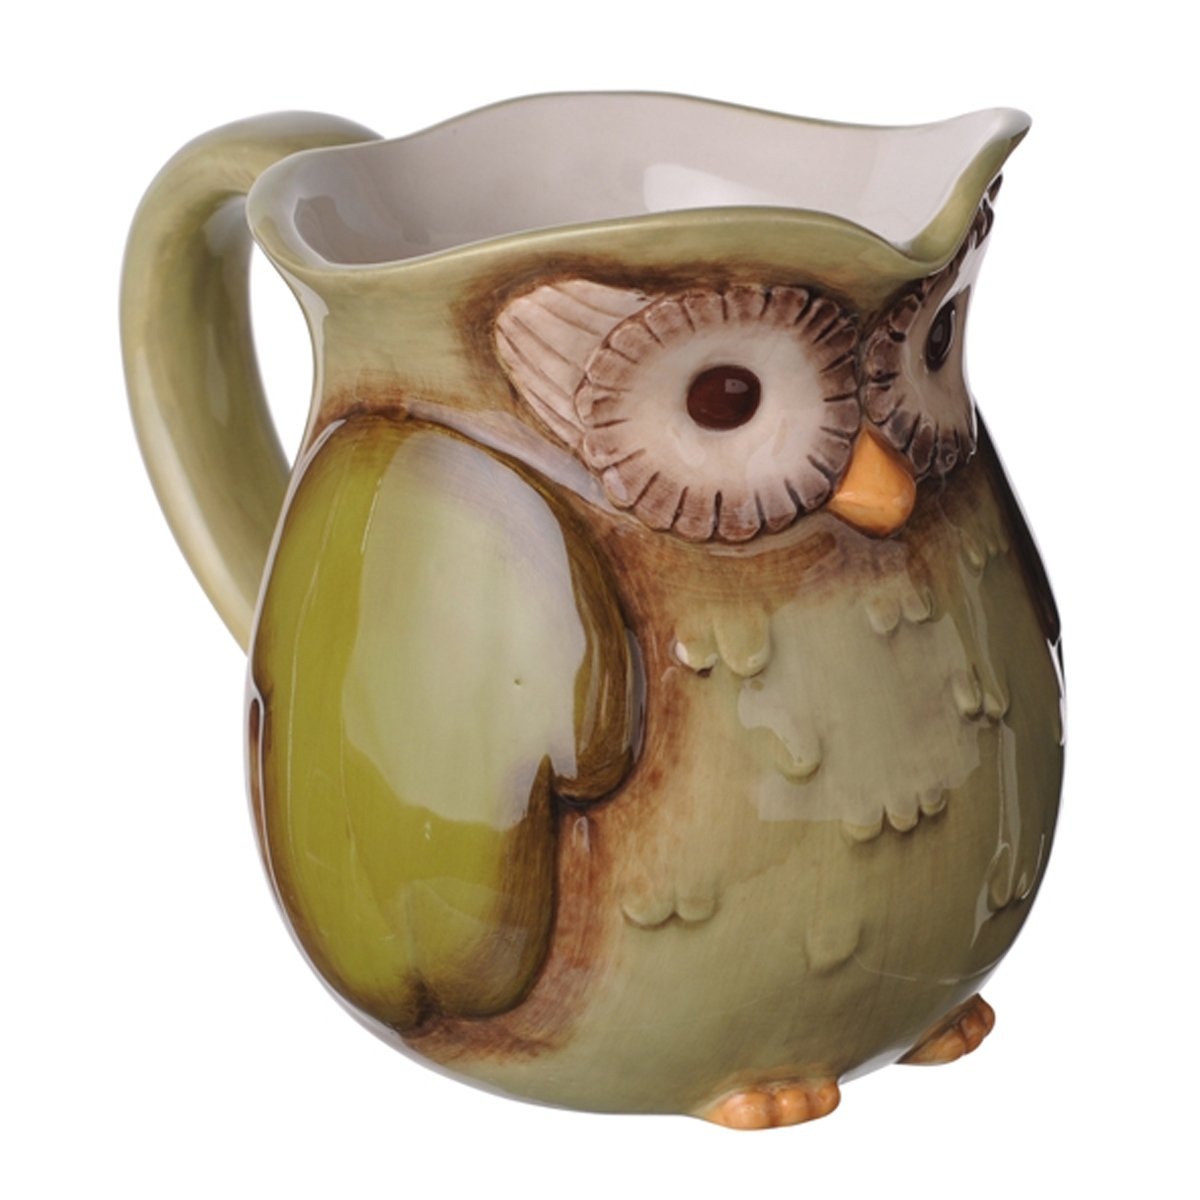 Serve Cold Beverages in This Owl Pitcher